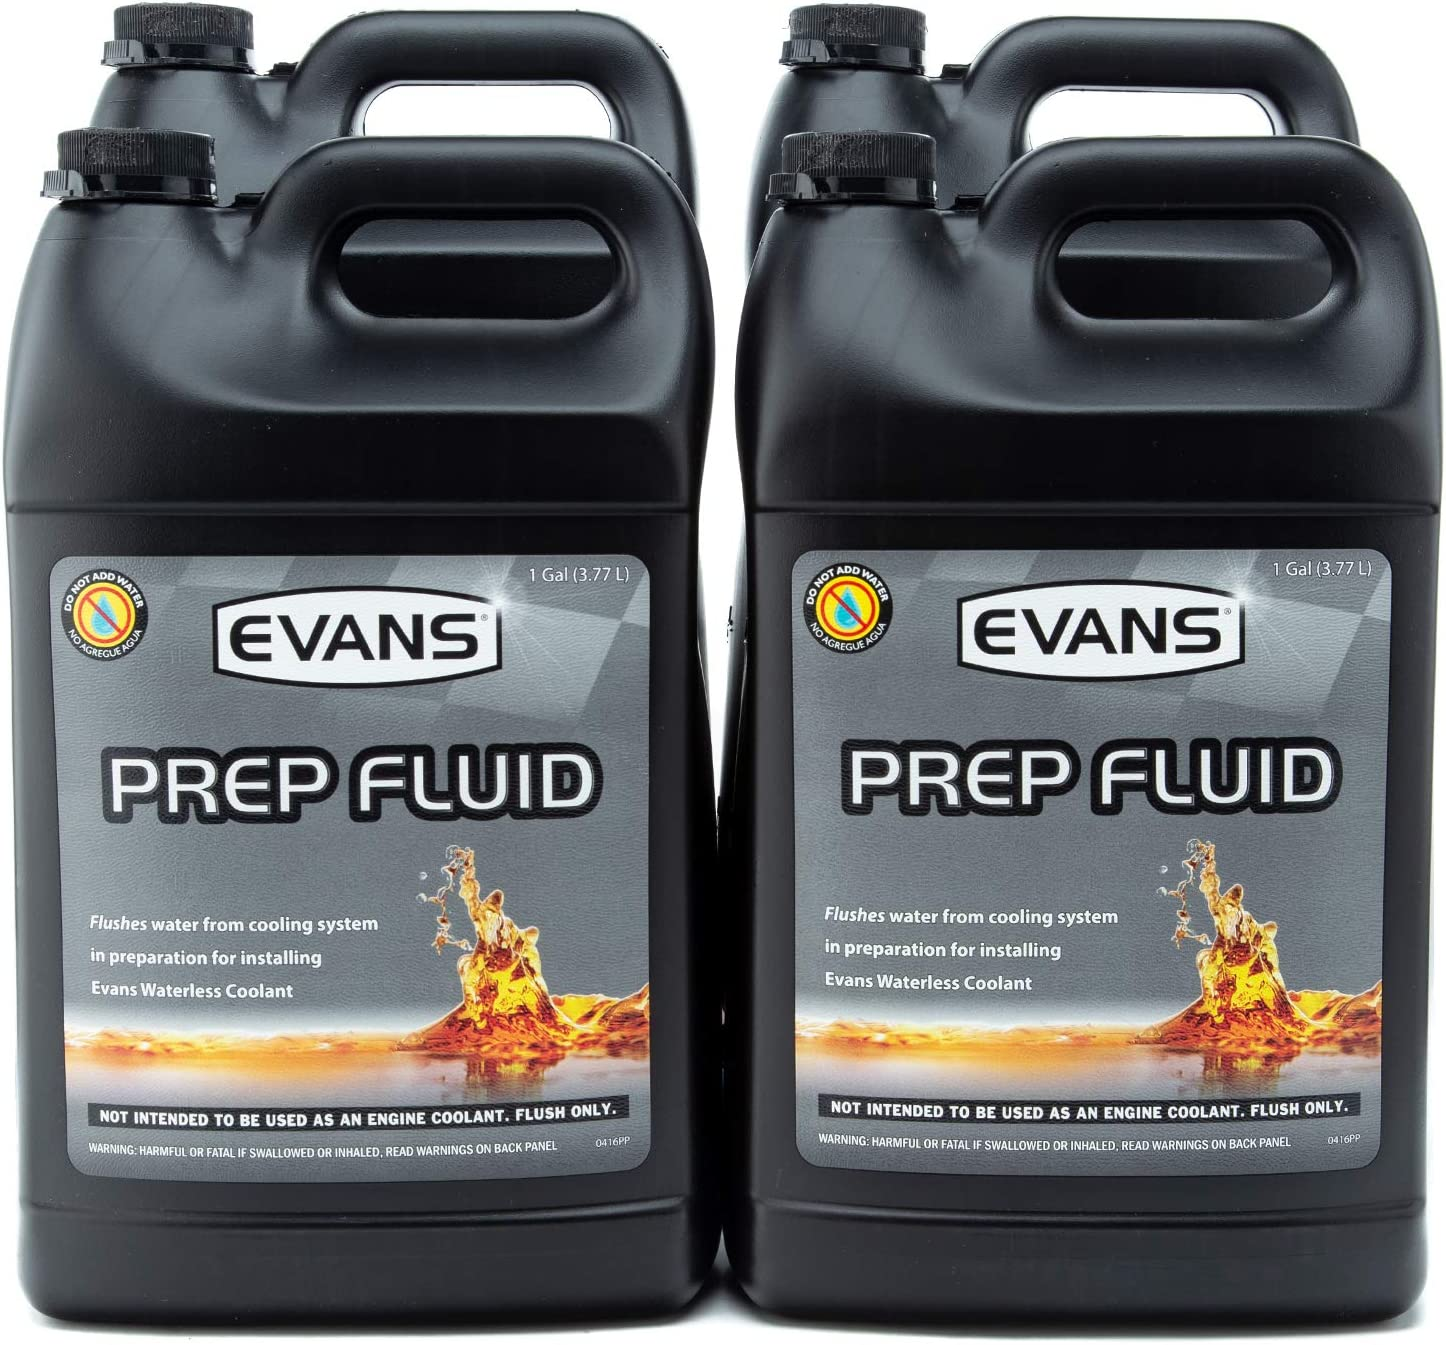 EVANS Coolant EC42001 Prep Fluid, 1 Gallon, 4 Pack